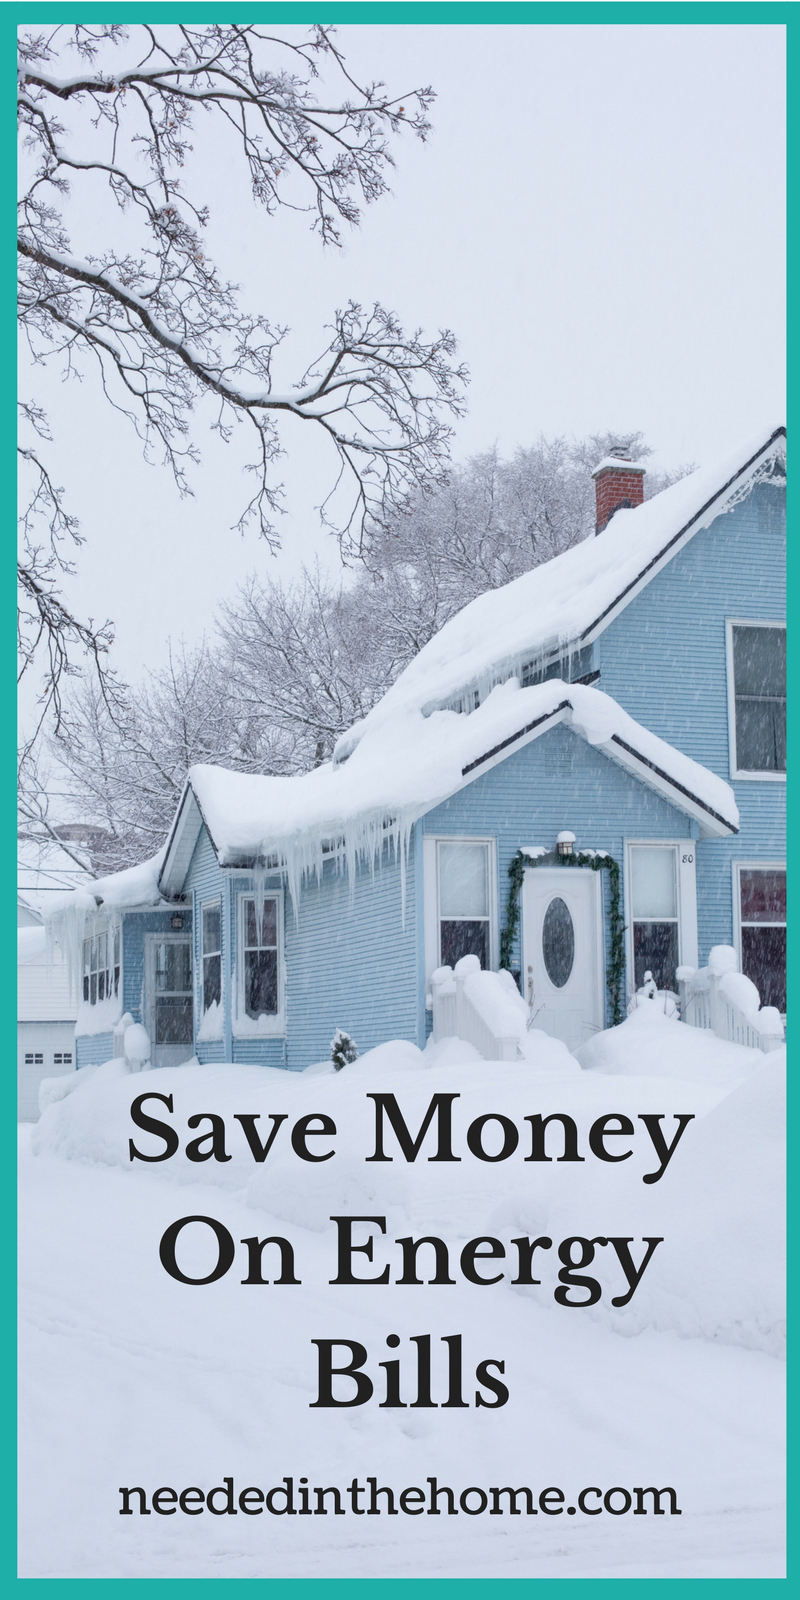 house in winter snow Saving Money On Those Energy Bills? It Is Possible neededinthehome.come